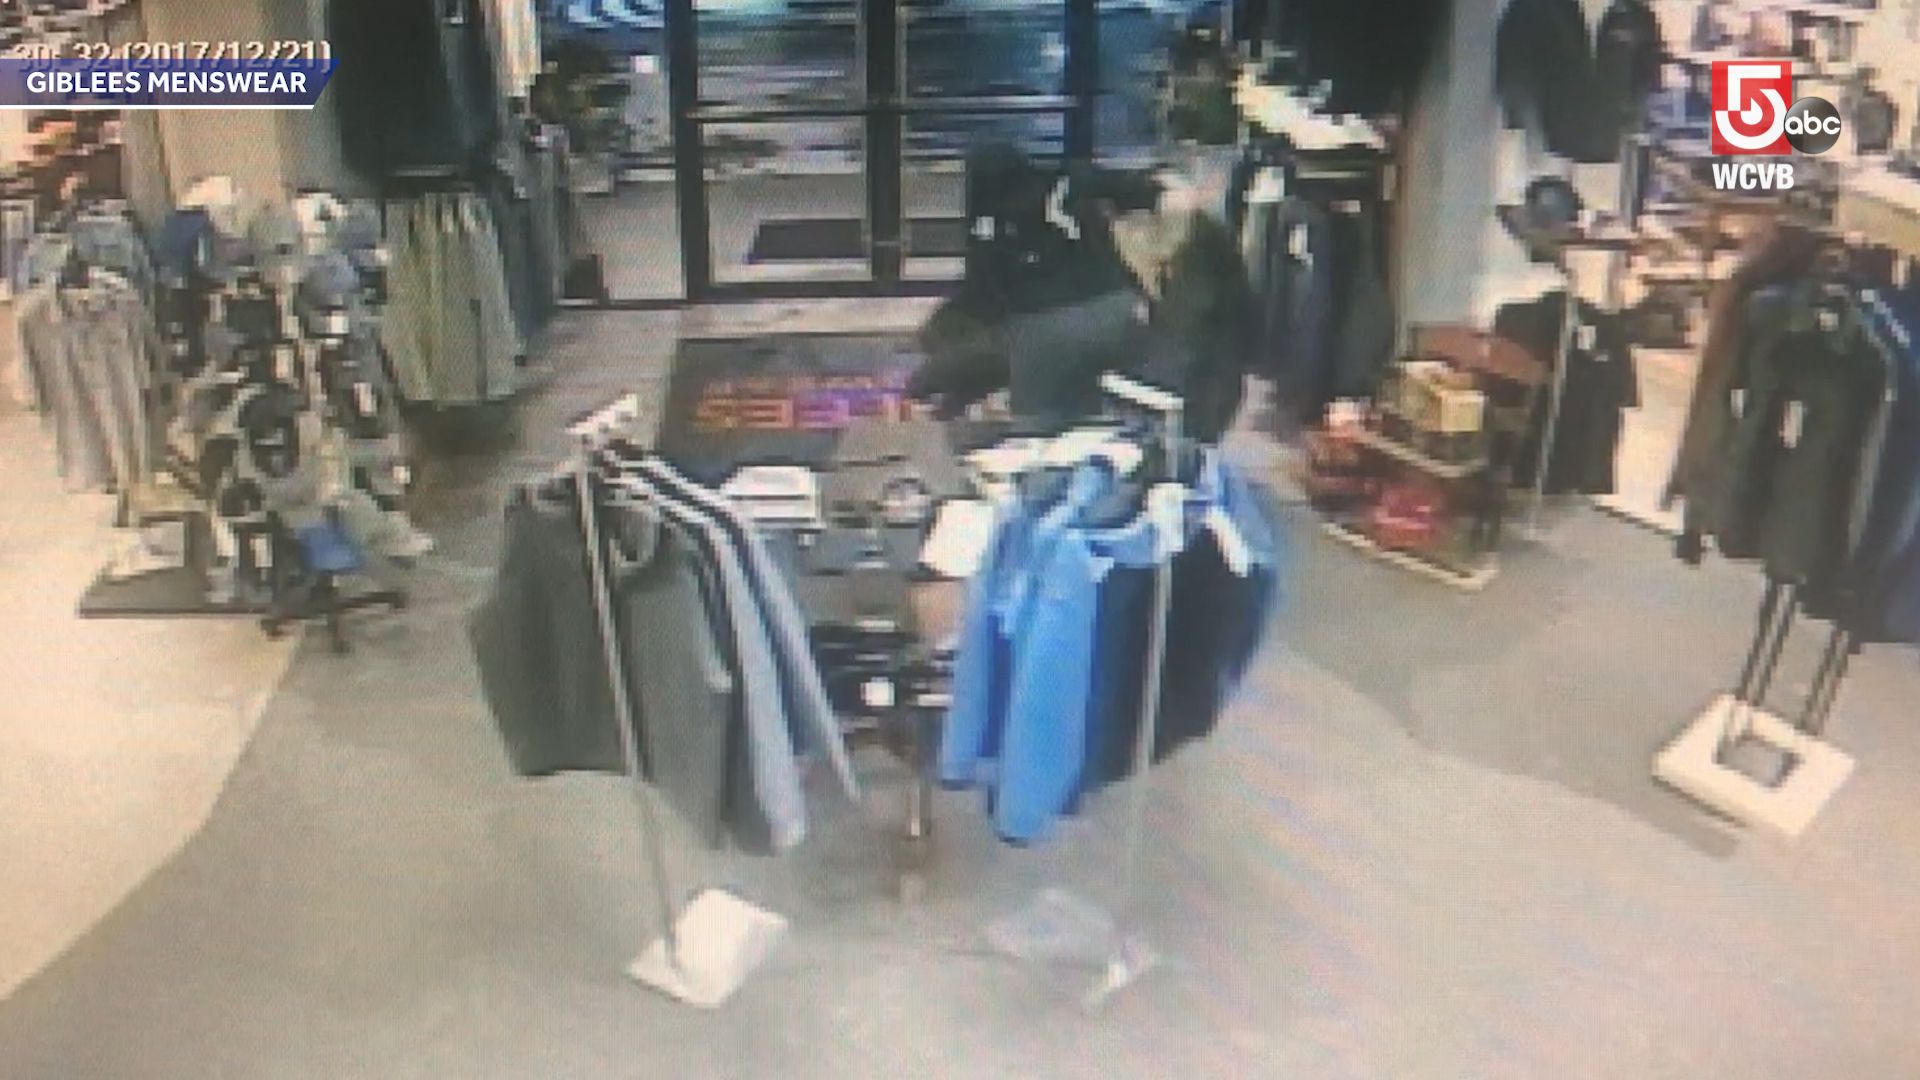 Shoplifters got away with $30,000 in coats, store said